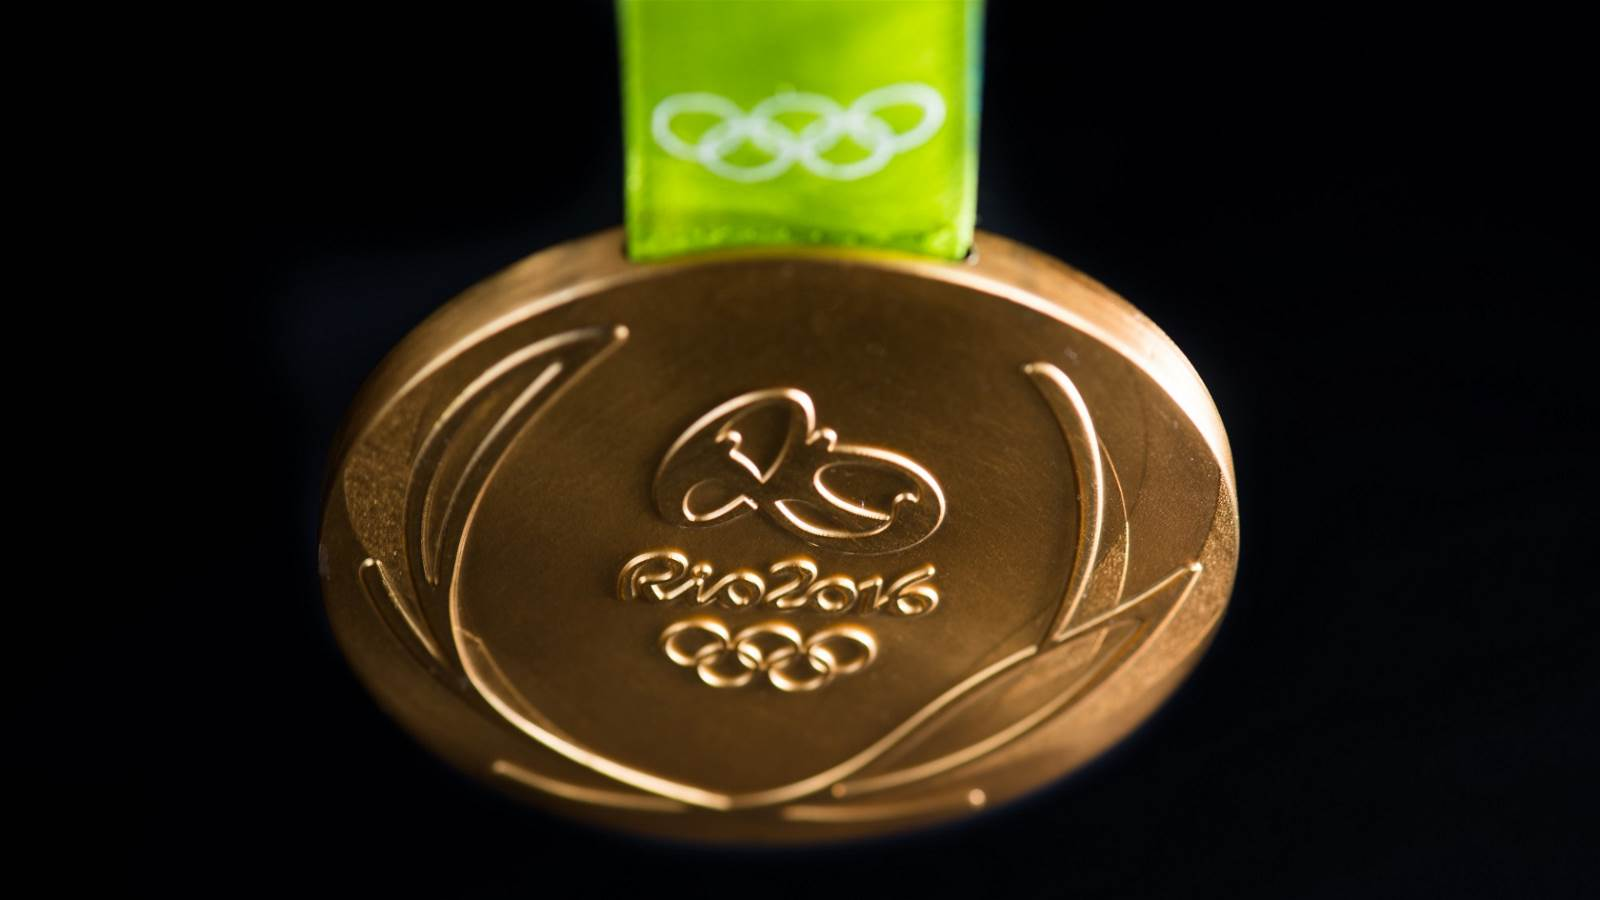 1600x900 - Olympic Gold Metal Wallpapers 3